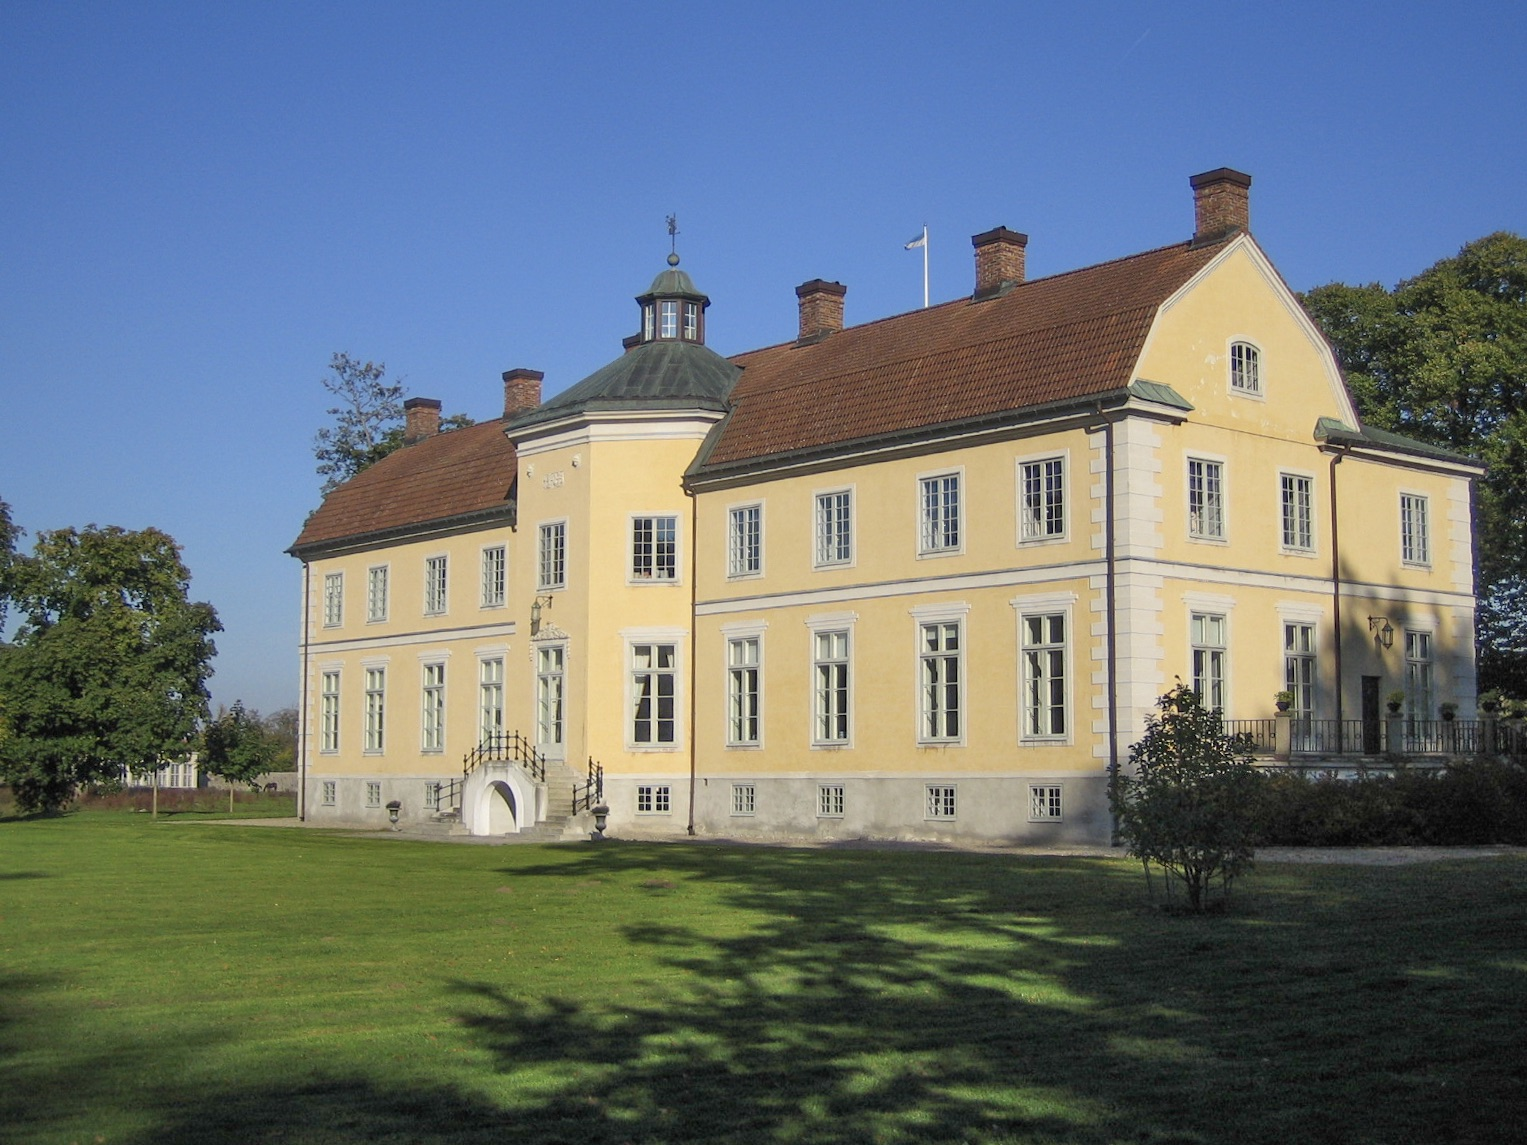 List of castles and palaces in Sweden | Military Wiki | Fandom